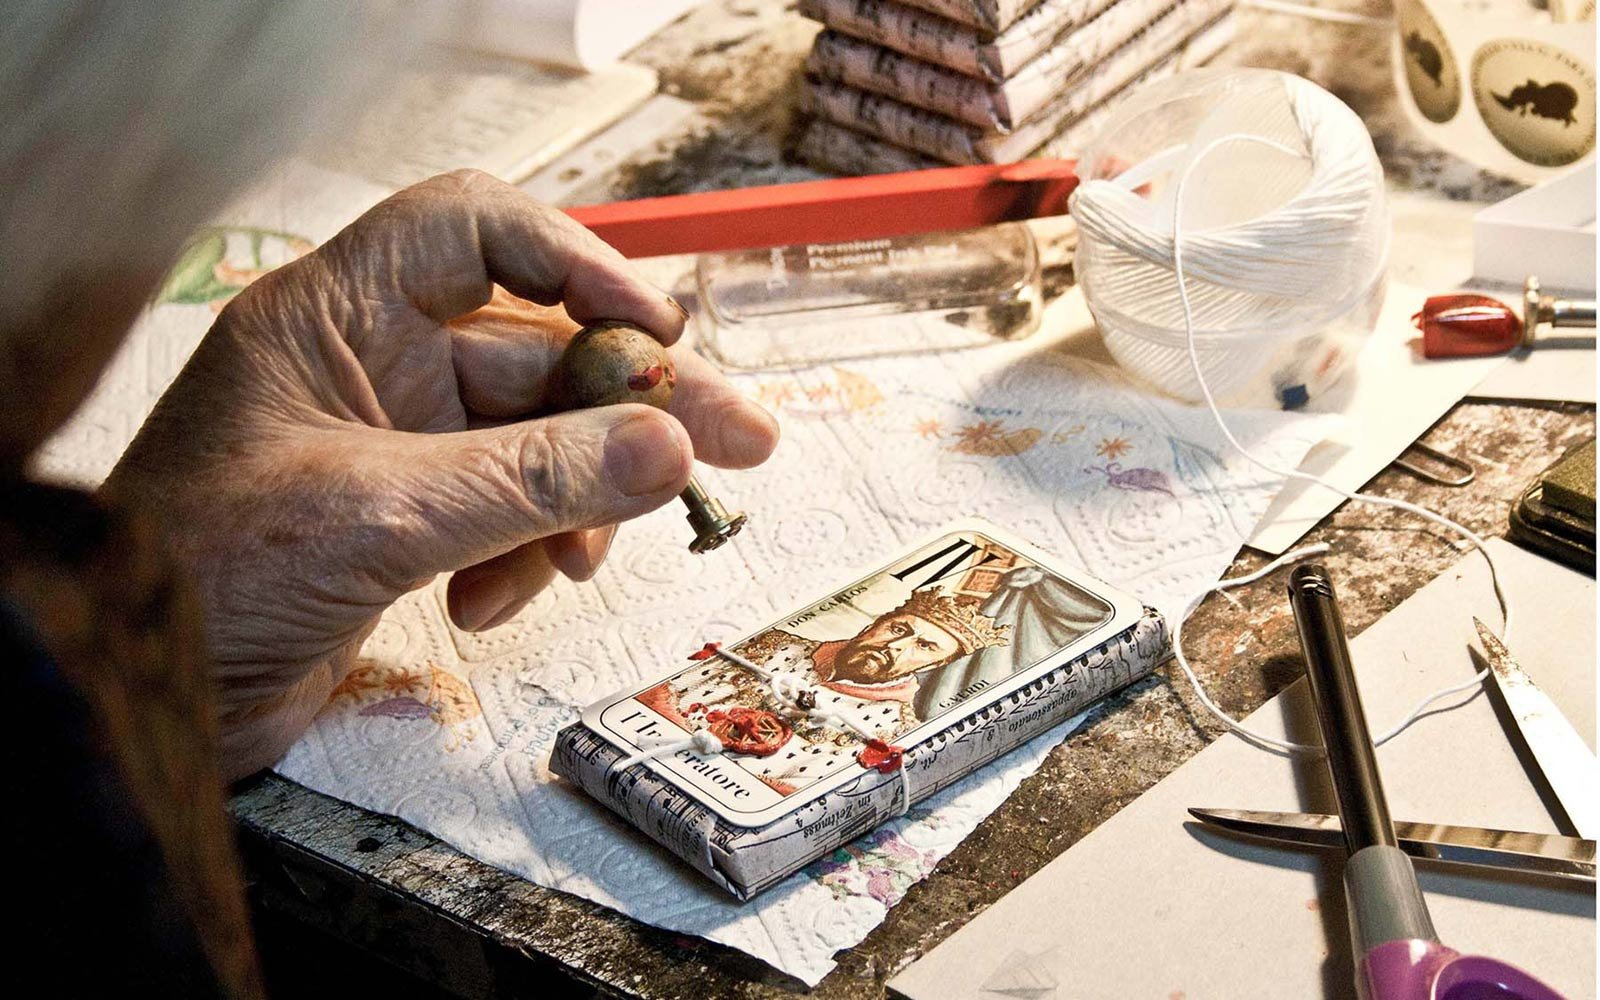 Italian Stories, Artisan Workshops and Tours, Italy